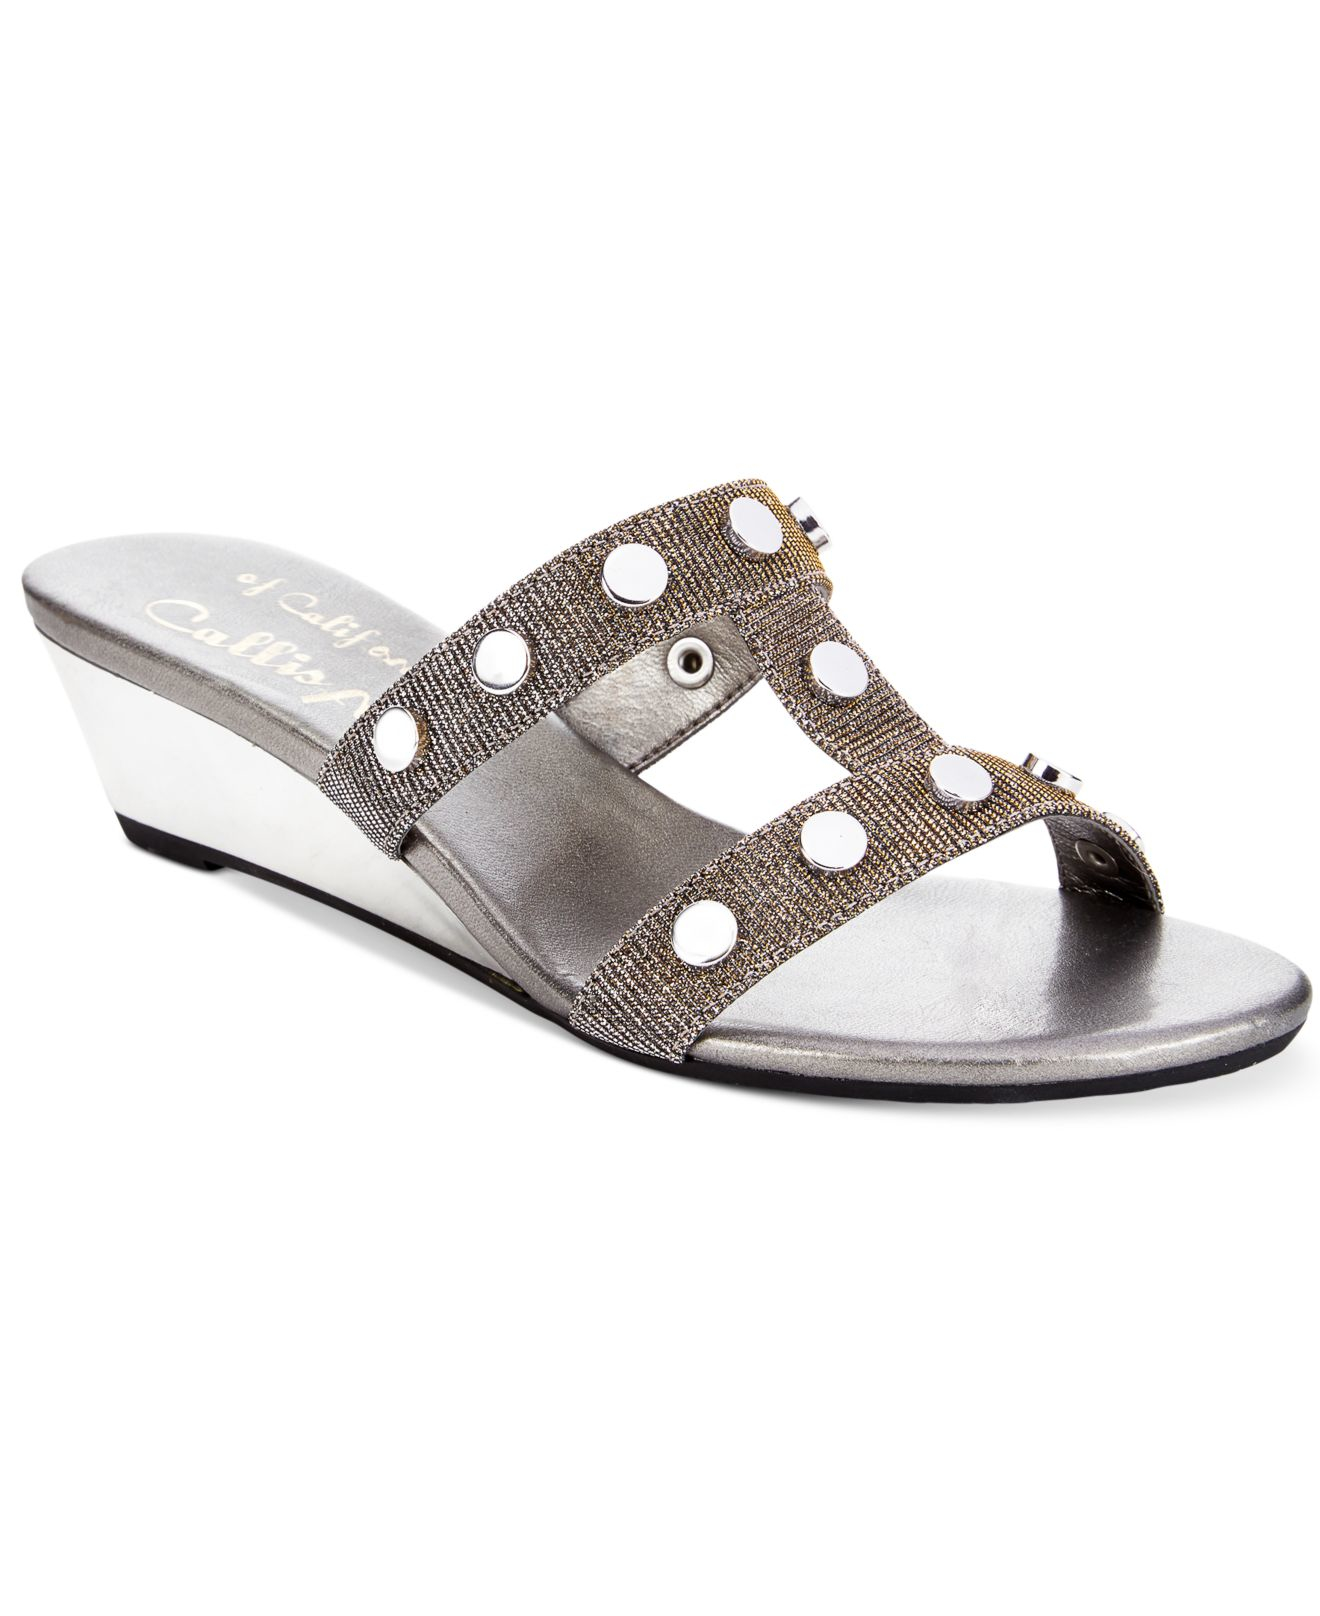 Callisto Thelma Wedge Sandals In Silver